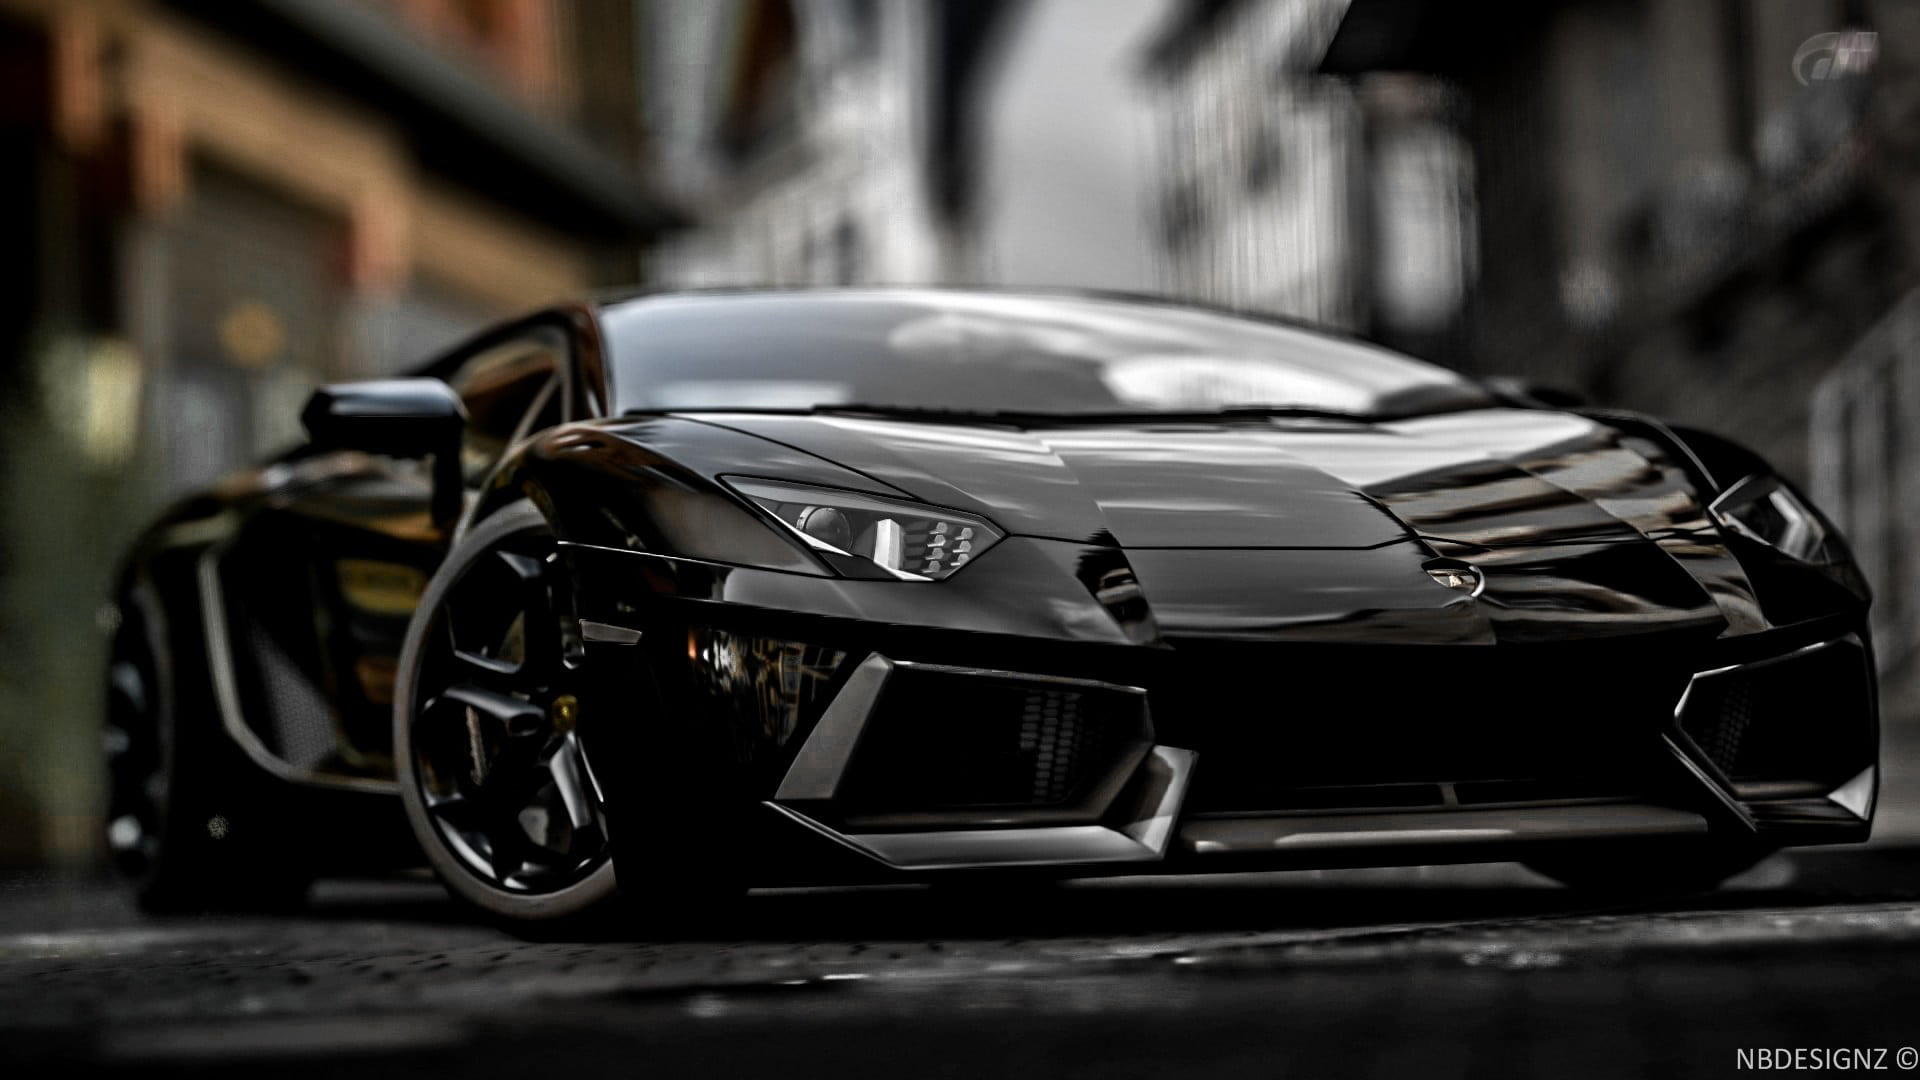 They don't require the use of cellular data and you don't have to worry about losing signal. Black Sports Car Wallpaper Lamborghini Lamborghini Aventador Vehicle Wallpaper For You Hd Wallpaper For Desktop Mobile